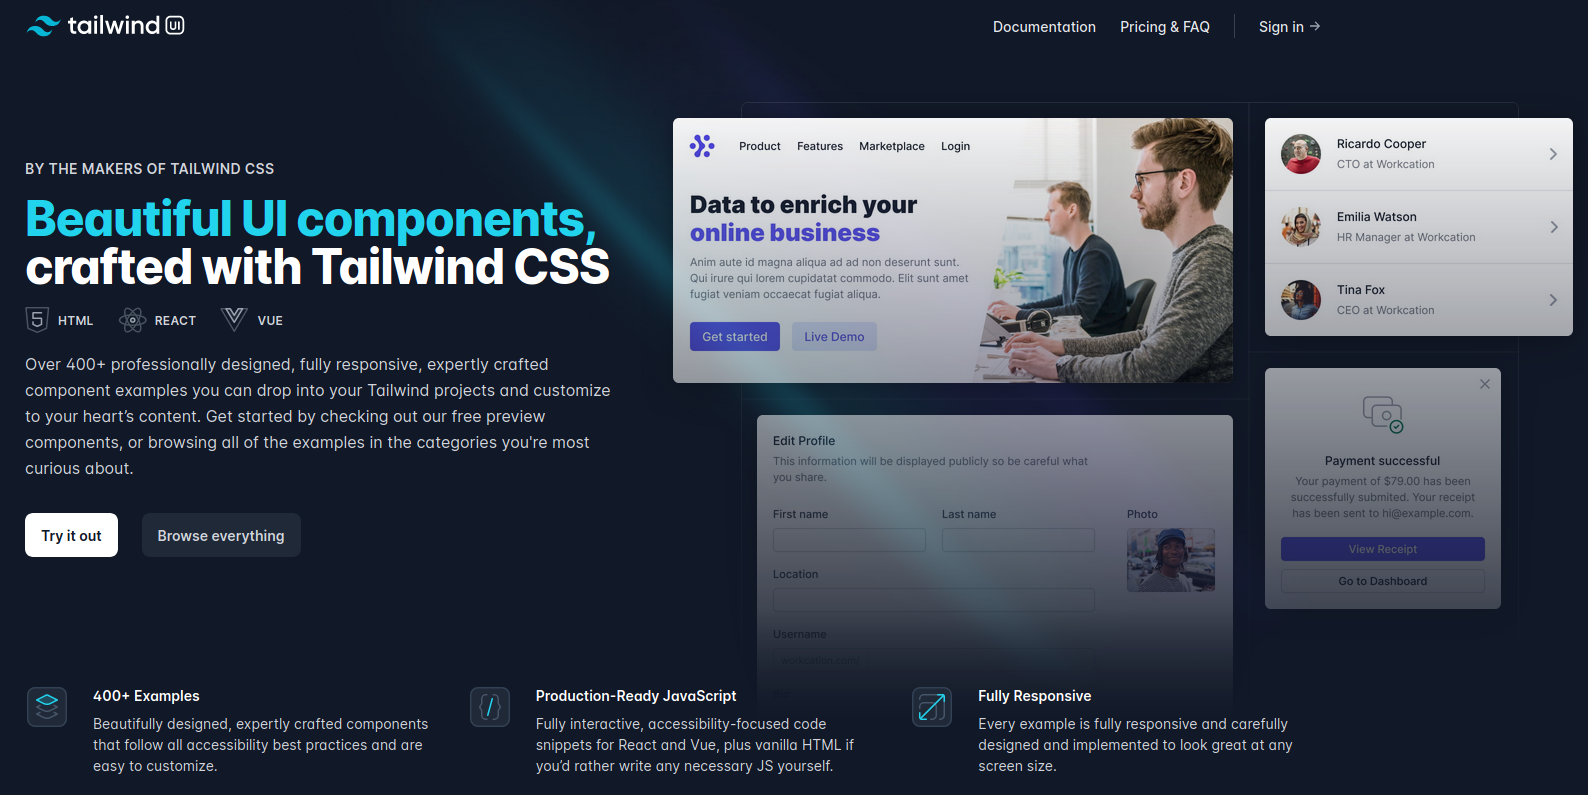 10 Tailwind CSS Components That You Can Use To Get Started Quickly